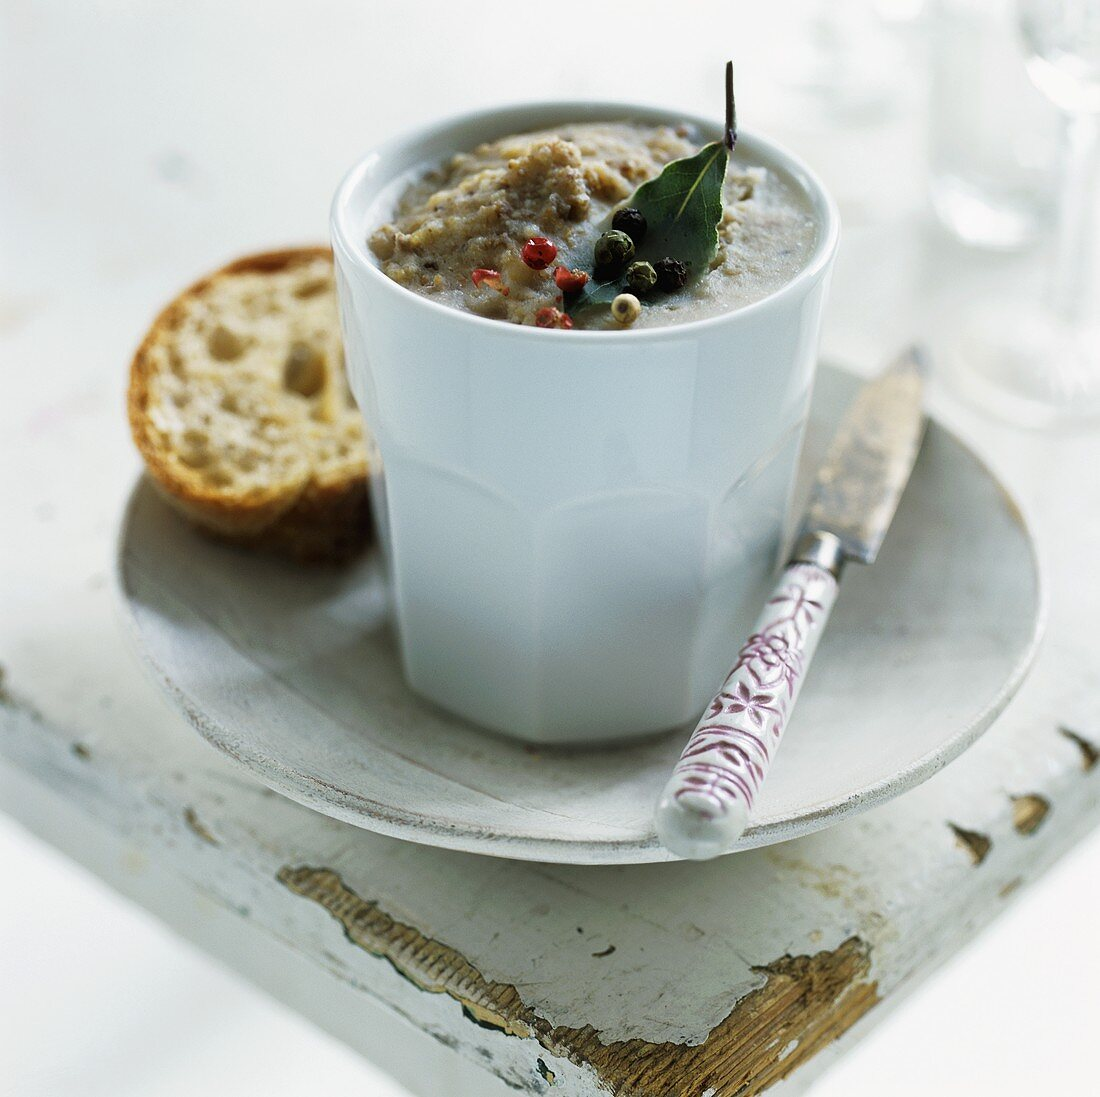 A beaker of pork dripping with knife and bread